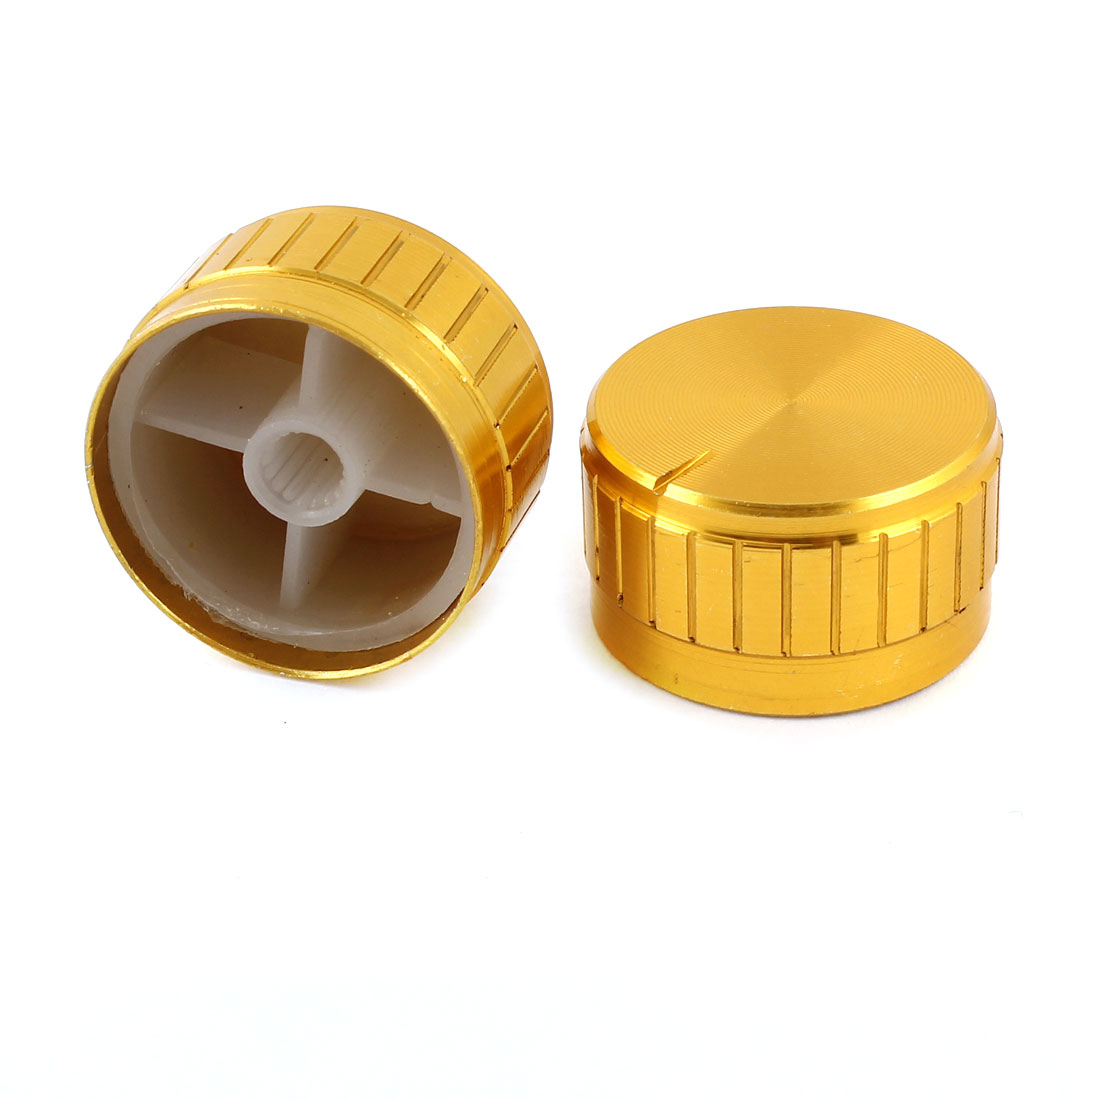 2 Pcs Gold Tone Volume Control Rotary Aluminum Potentiometer Knobs 30mm x 17mm